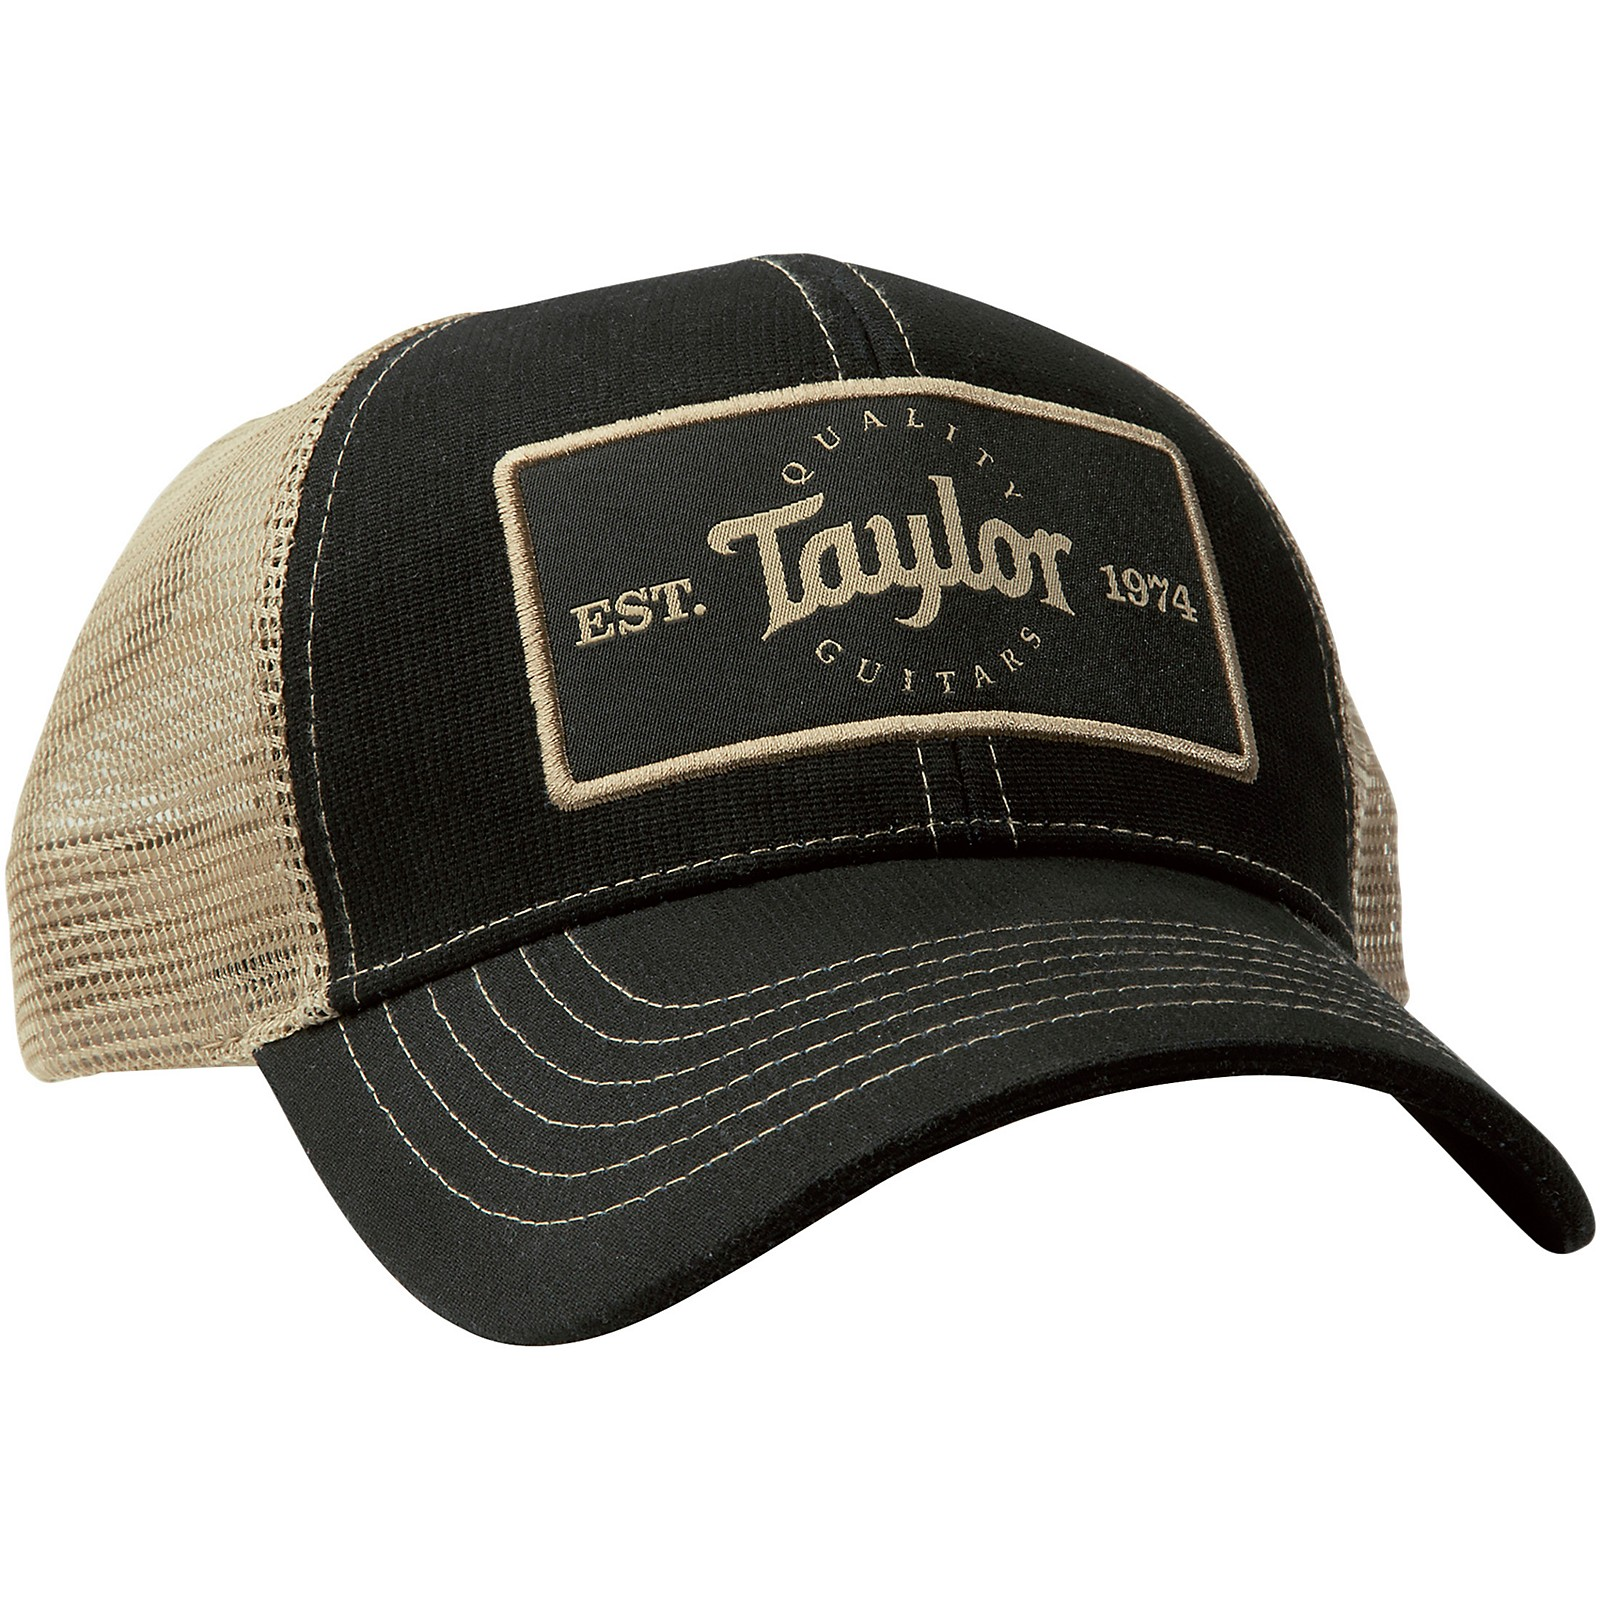 Taylor Original Trucker Hat